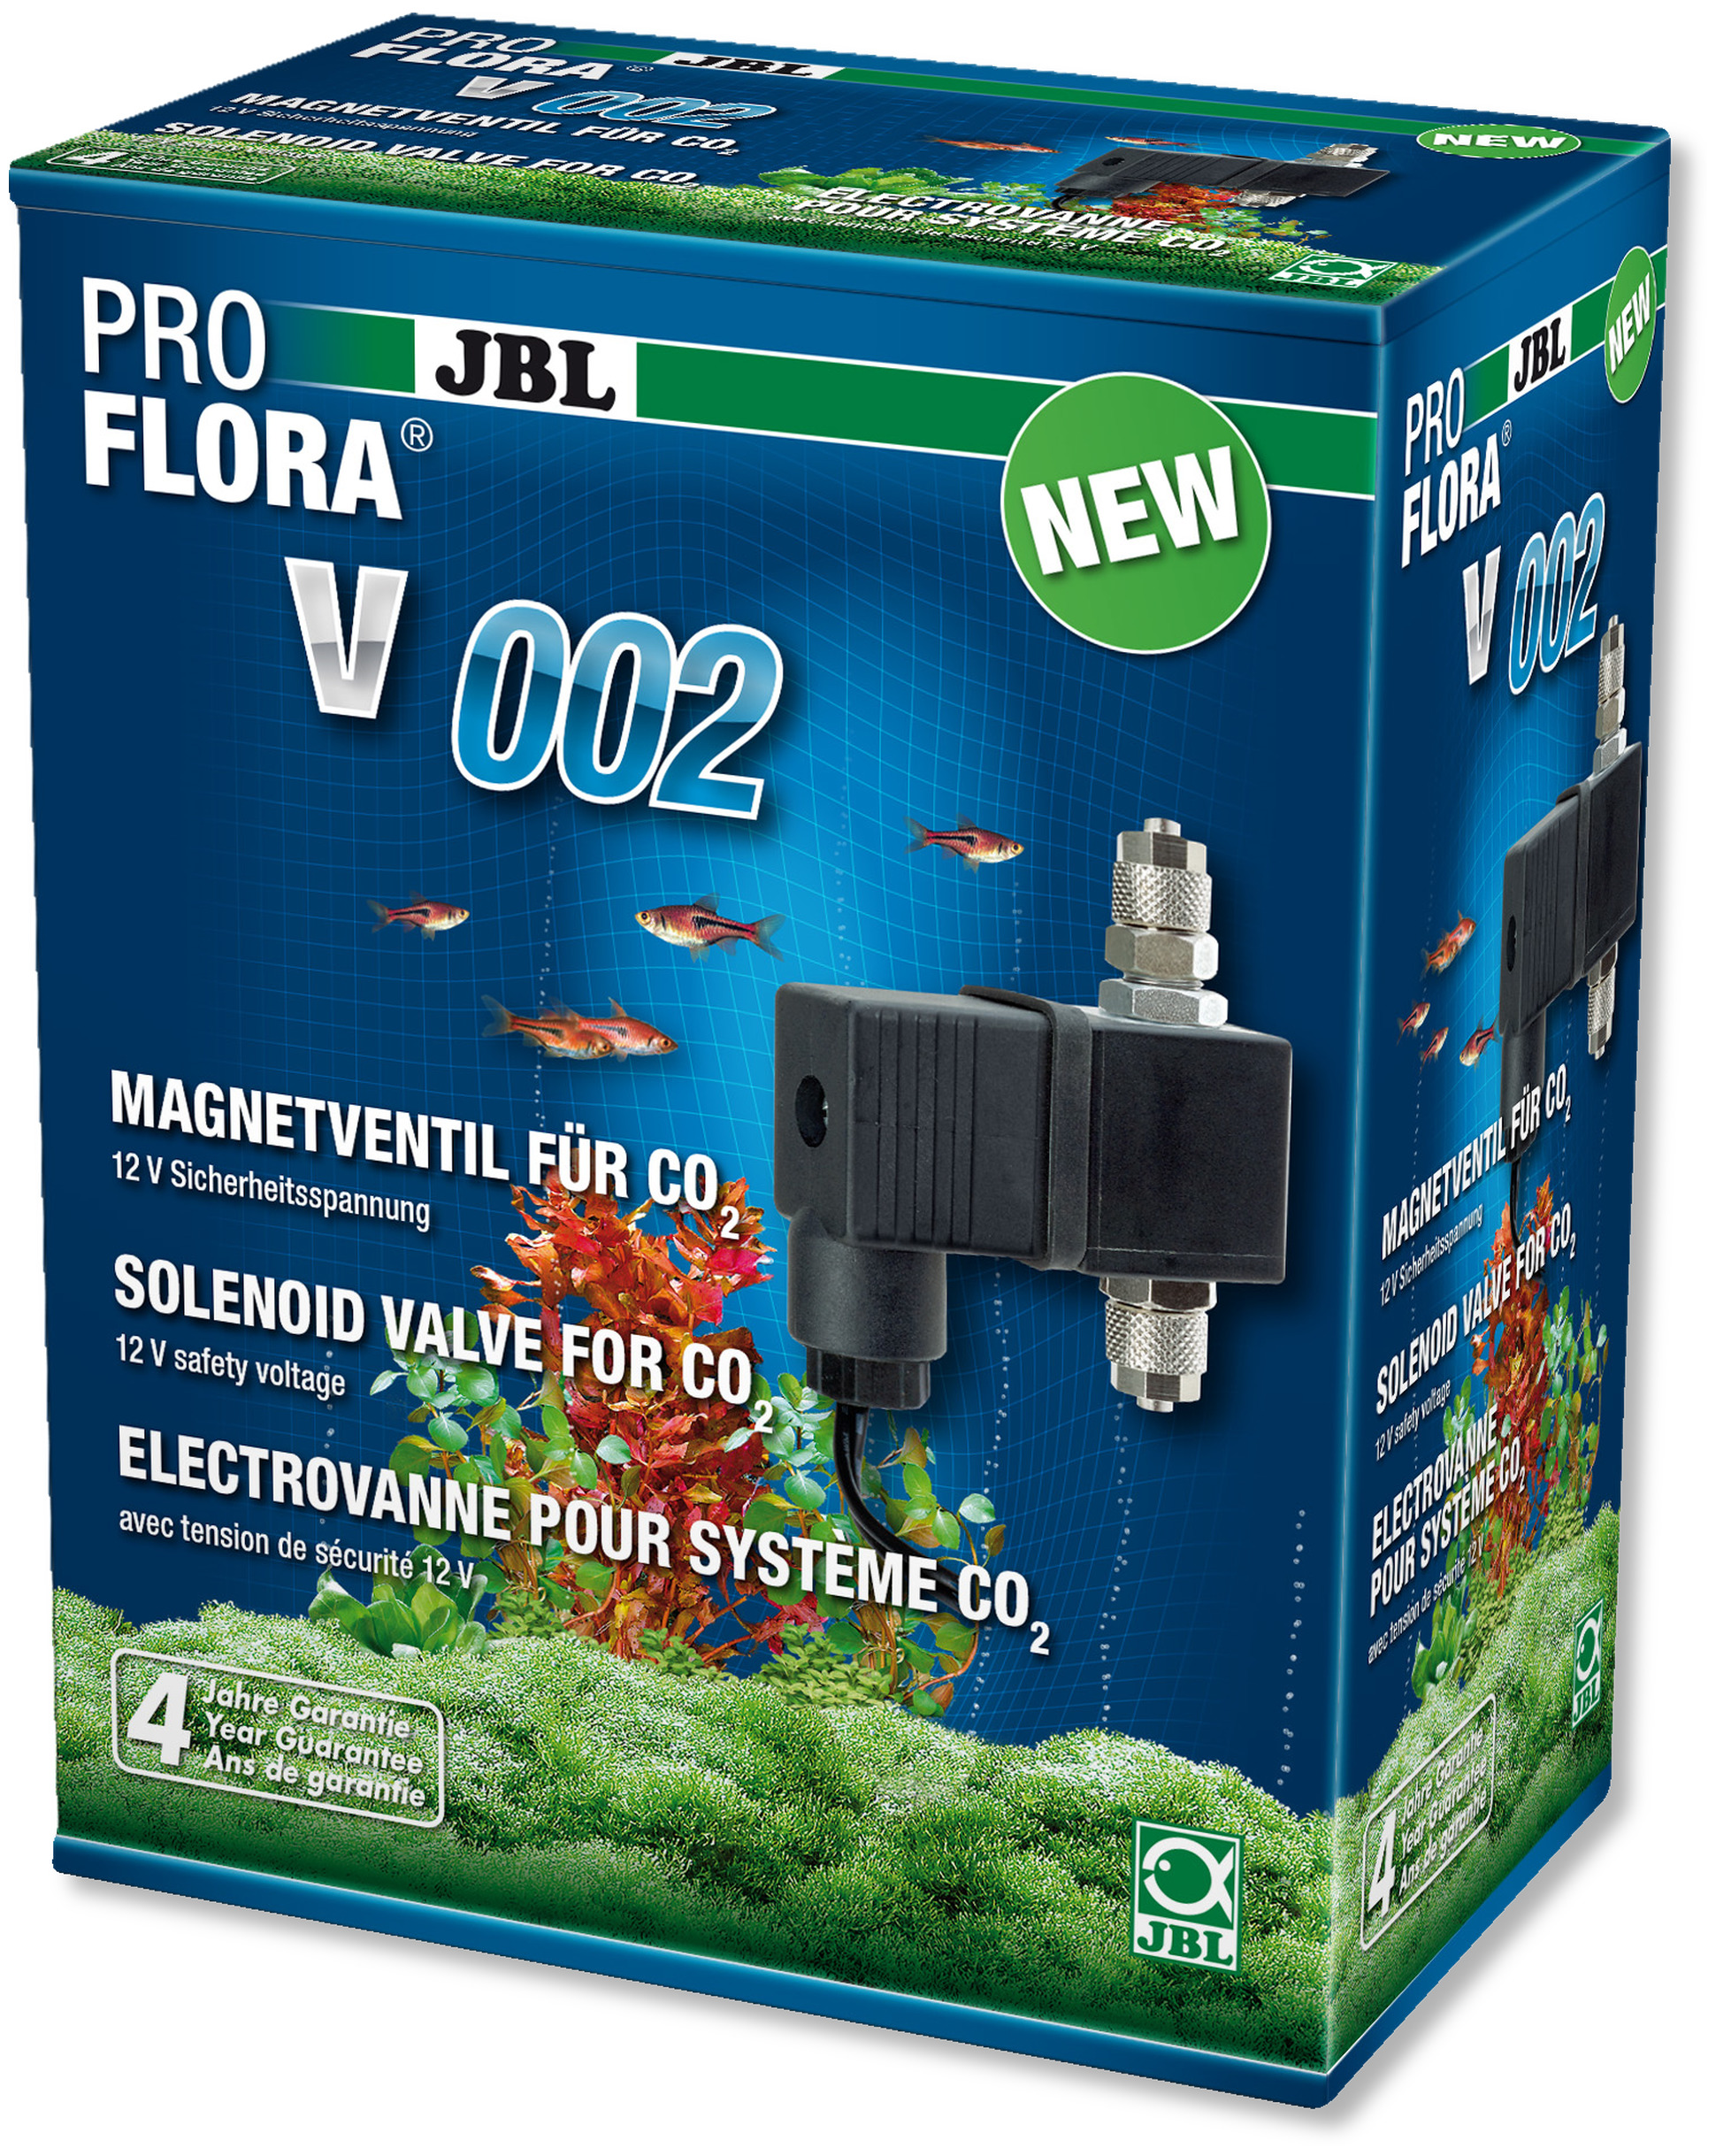 jbl-proflora-v002-electrovanne-pour co2-aquarium